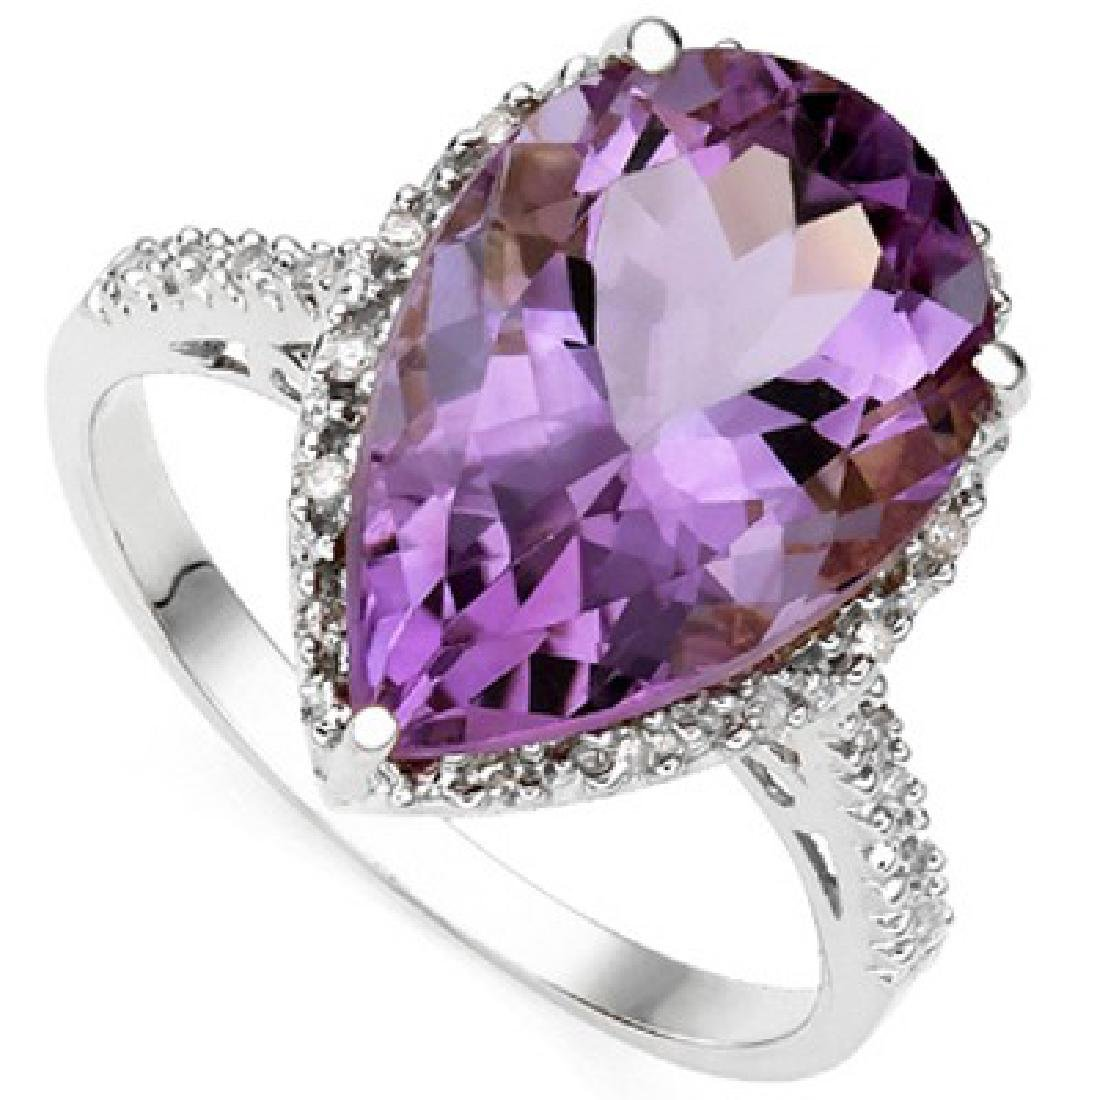 5CT PEAR CUT DEEP AMETHYST SOLITAIRE ESTATE RING